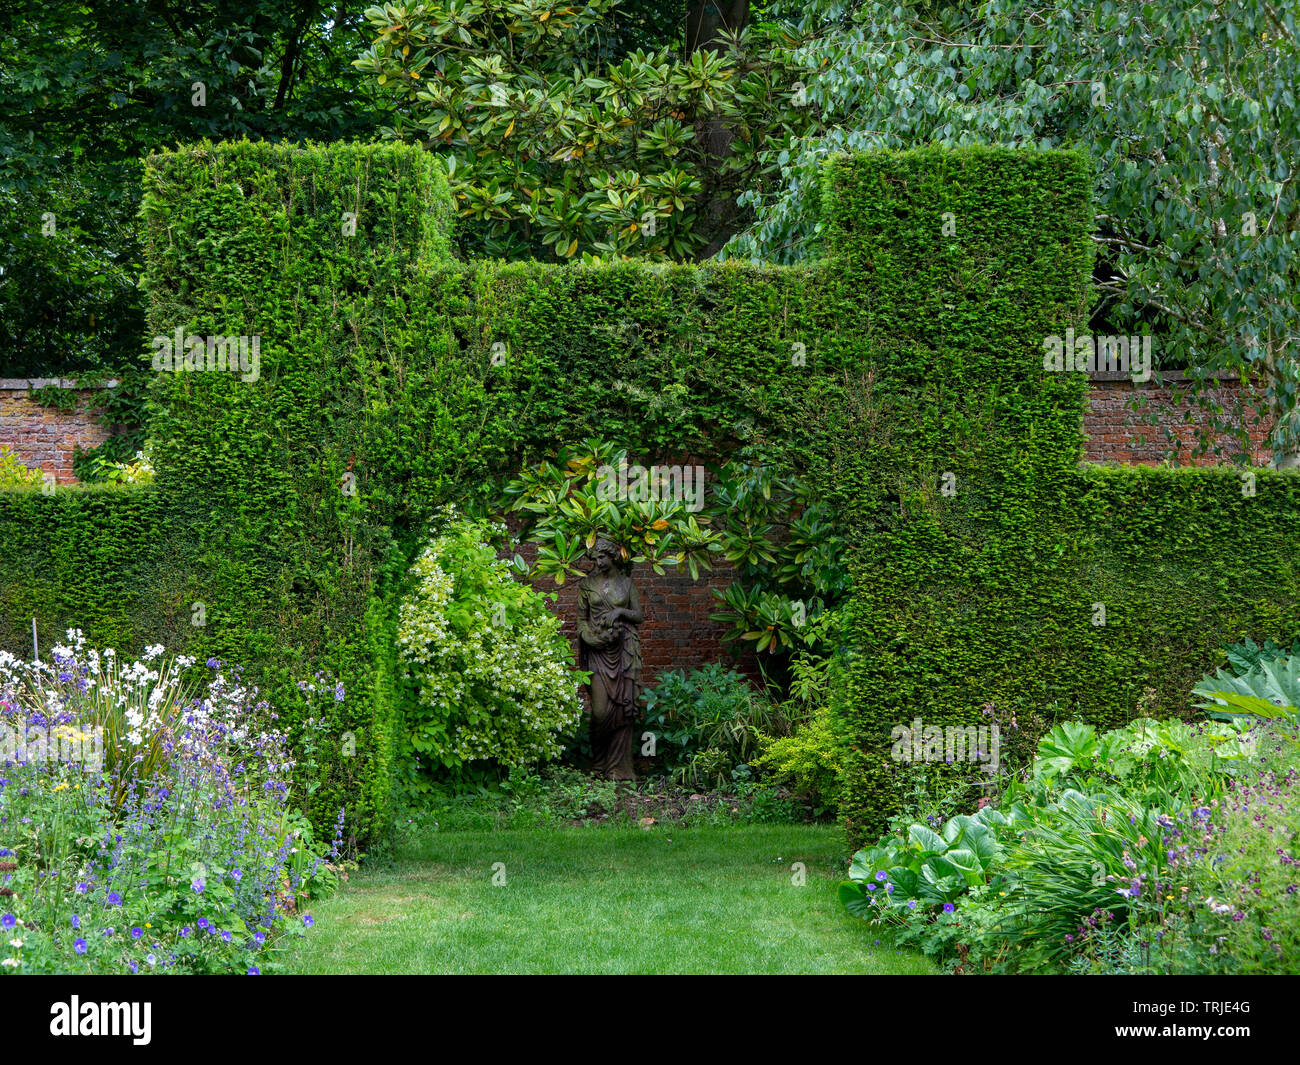 Topiary Archway In A Yew Hedge Framing A Female Figure Garden Statue Against A Red Brick Wall The Walled Garden Suffolk Uk Stock Photo Alamy